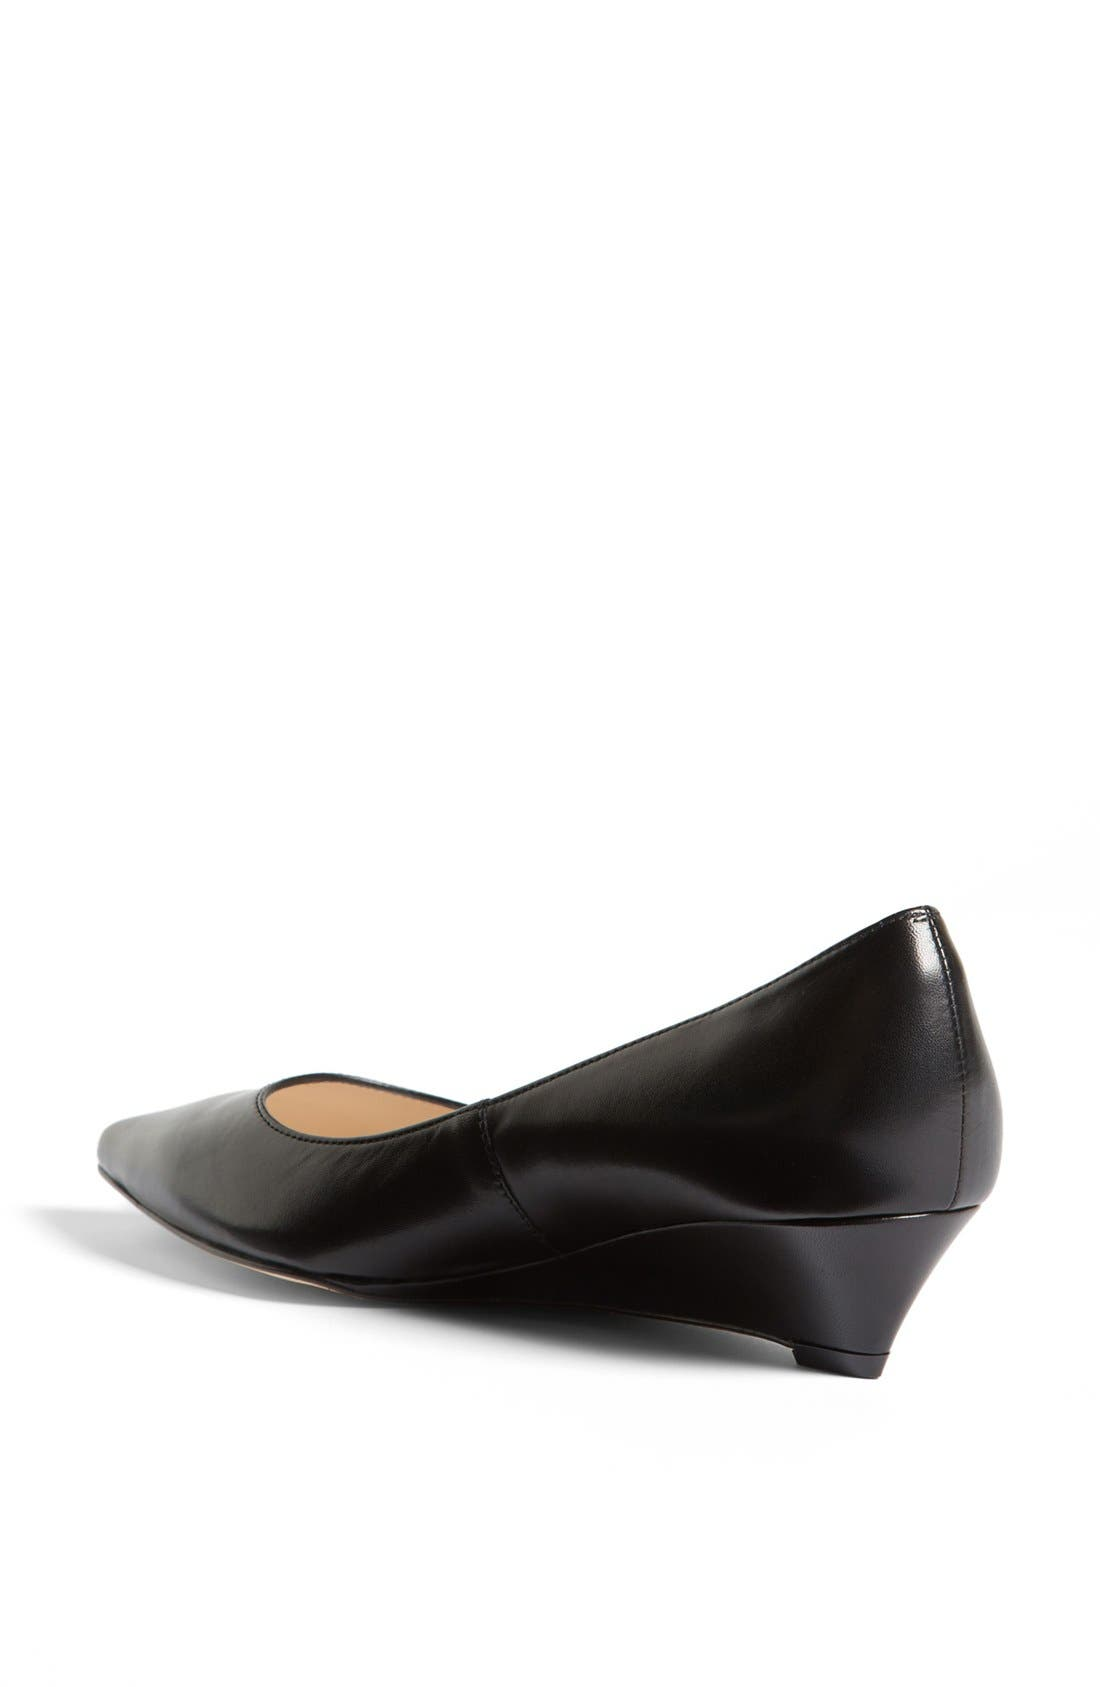 Alternate Image 2  - L.K. Bennett 'Perla' Wedge Pump (Online Only)